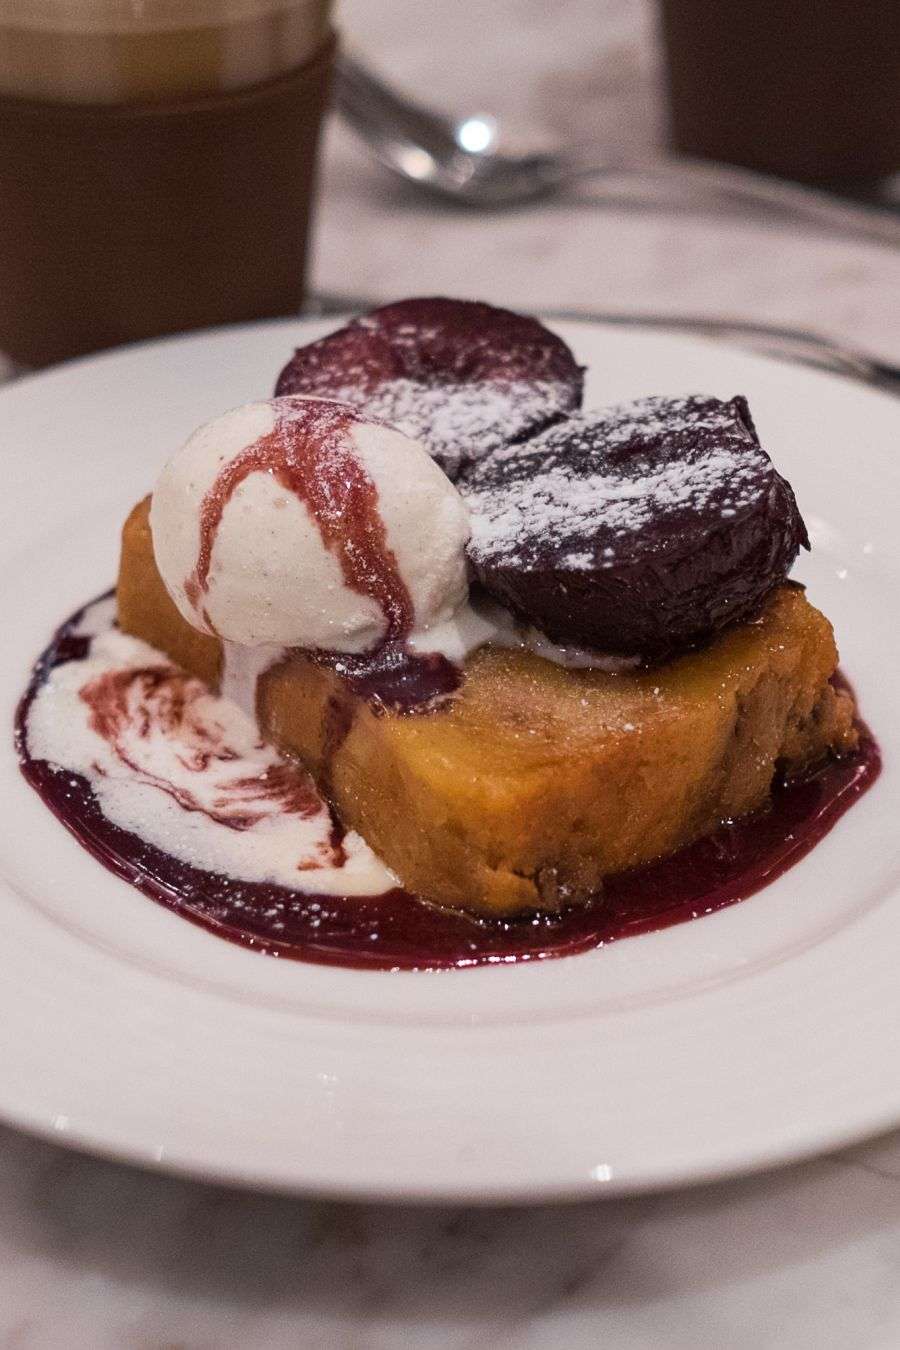 Bread and butter pudding, cinnamon poached plums, vanilla bean ice cream (AU$14.50)